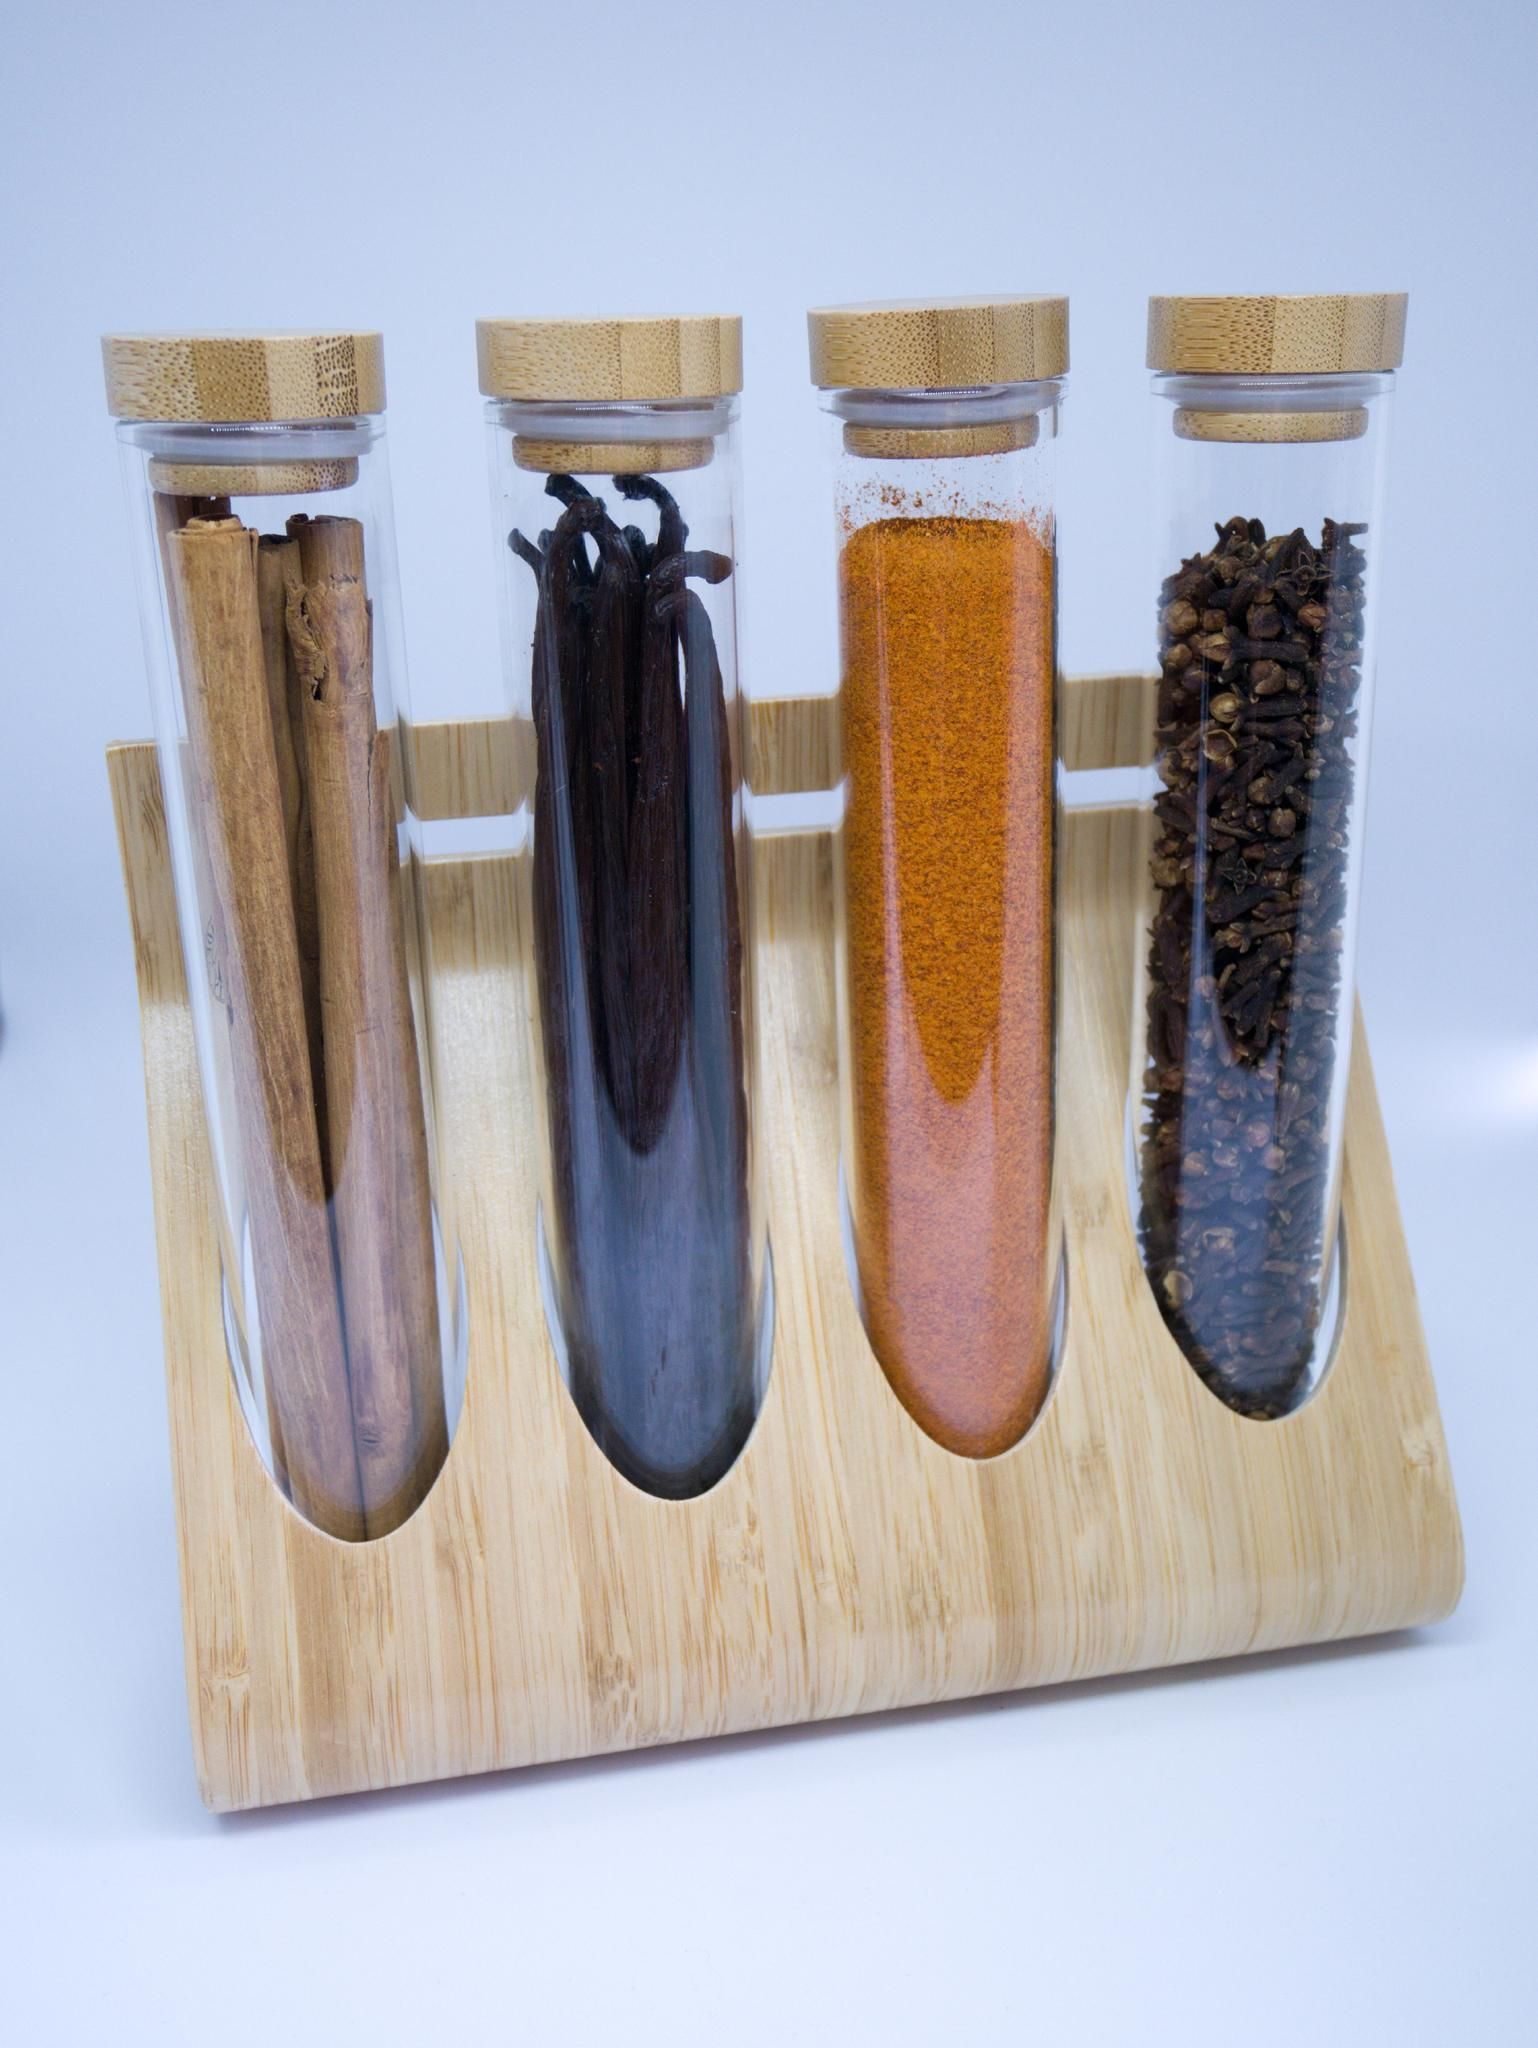 Vanilla beans and others spices